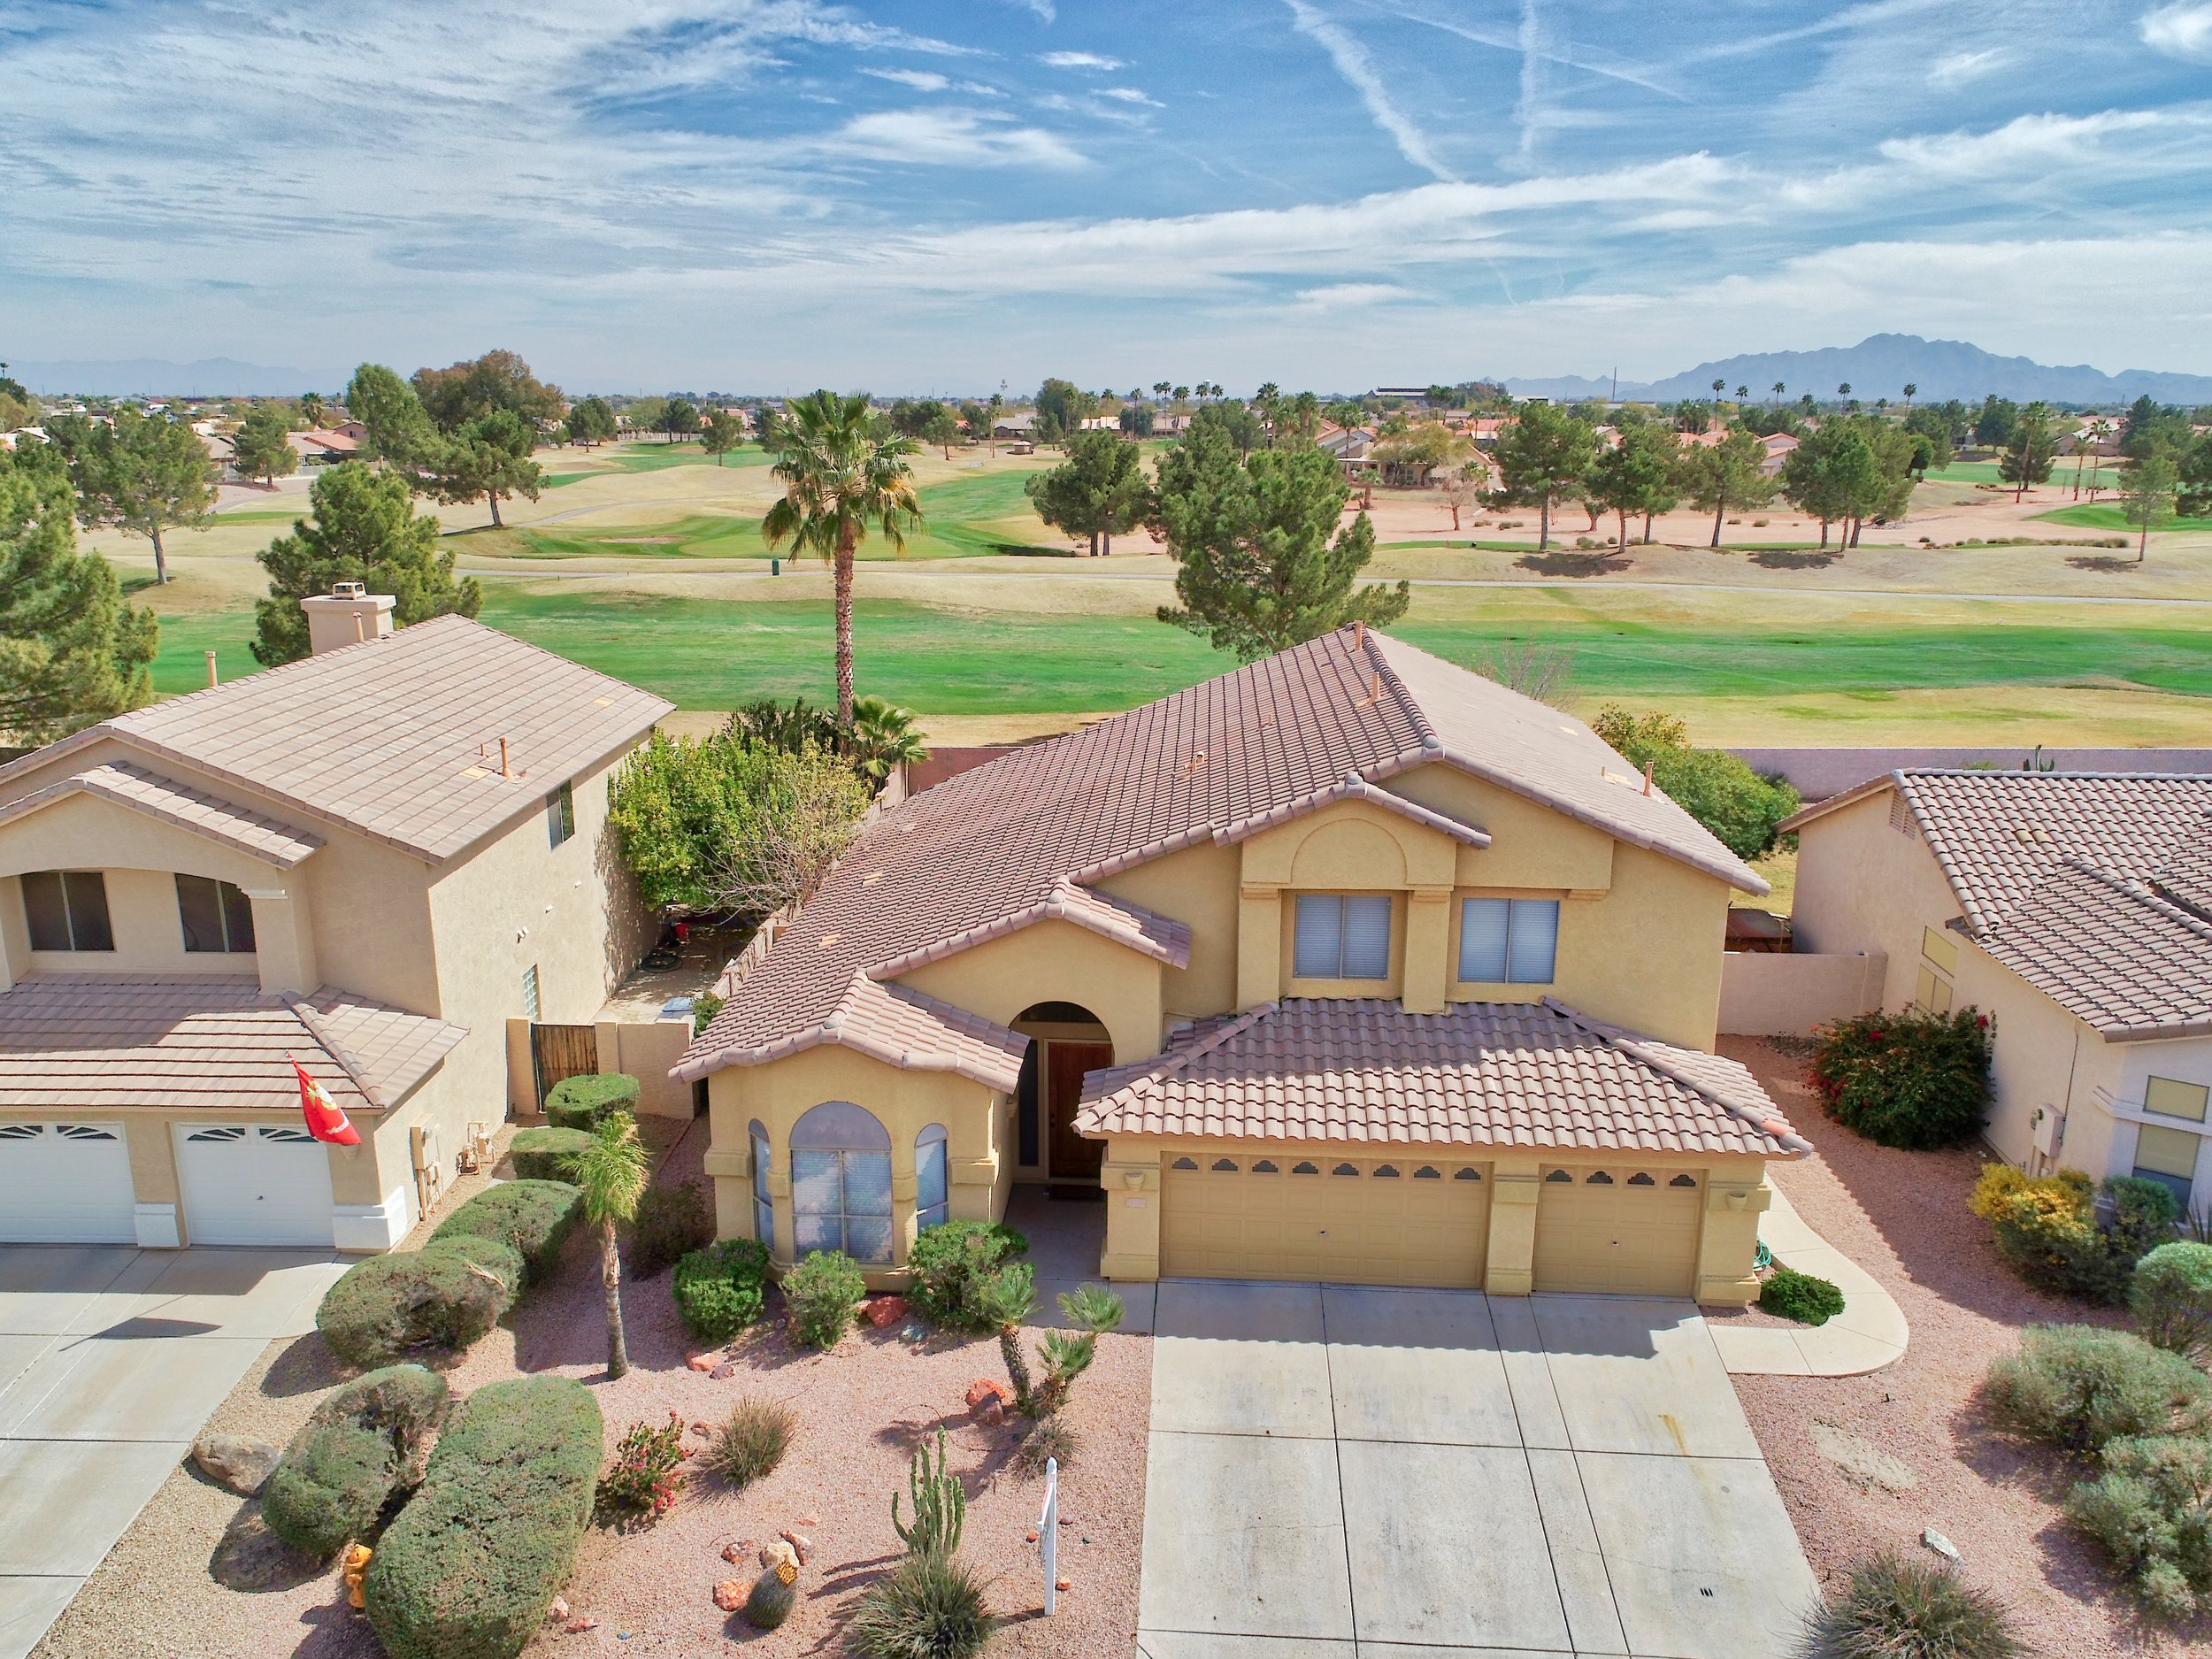 SELL YOUR HOME FASTER AND FOR MORE MONEY - There are four main advantages to using Professional Aerial Drone Photography.- Aerial photography reduces days on the market by 32% on average- They result in a higher sales price, about 5.25% on average- Aerial photography highlights property features, landmarks, and amenities that a regular ground level shot could never show- Aerial photographs create a higher perceived value of both the property and the Realtor